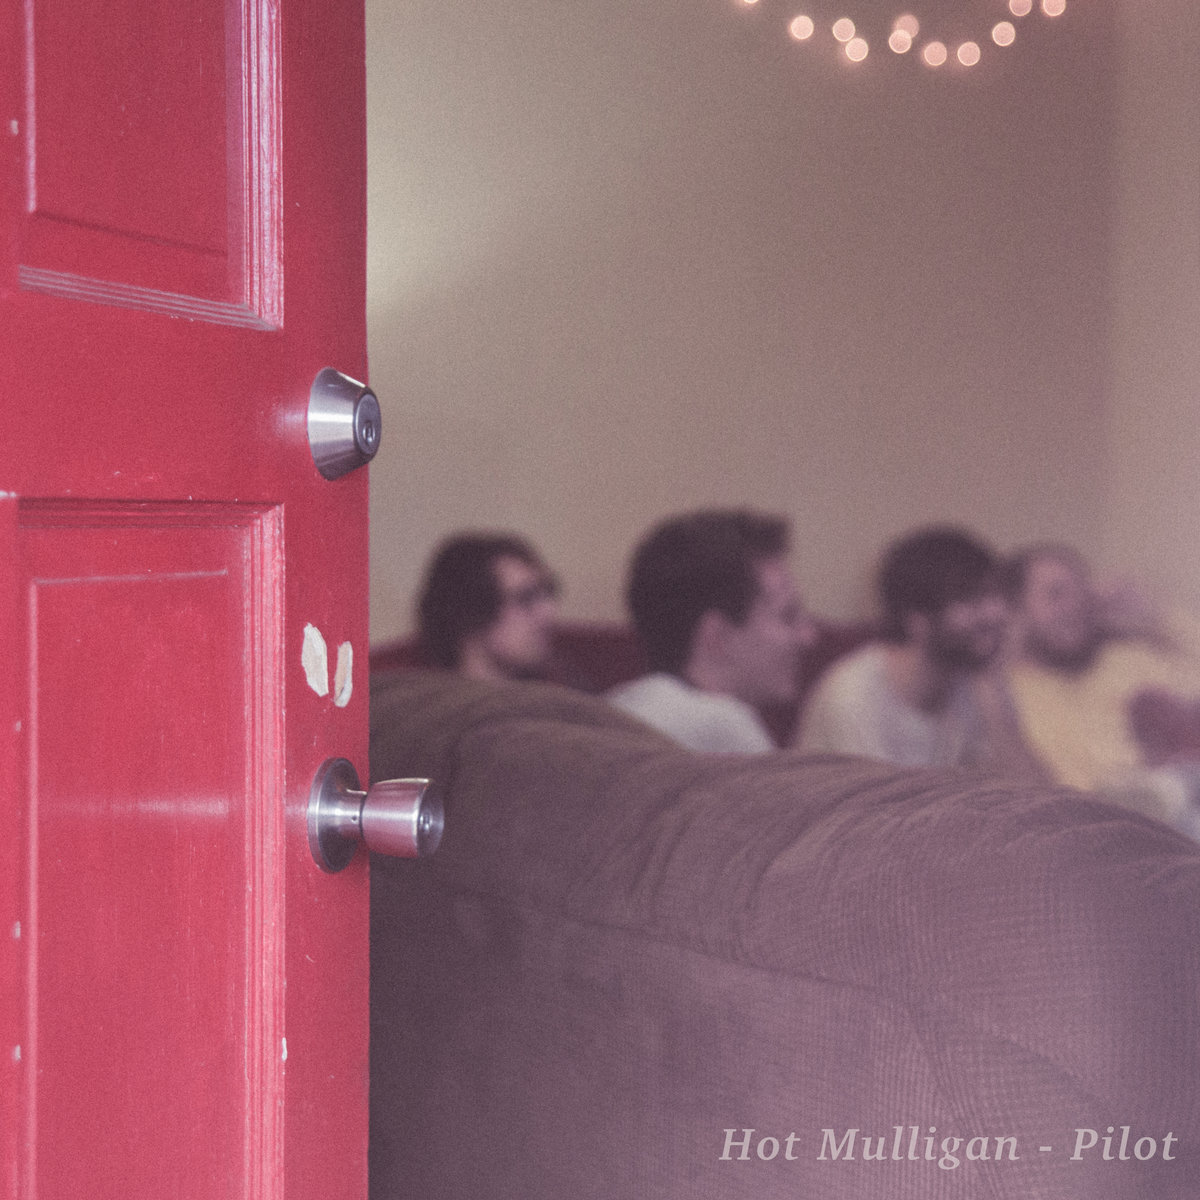 Hot Mulligan-Pilot (LP Artwork)